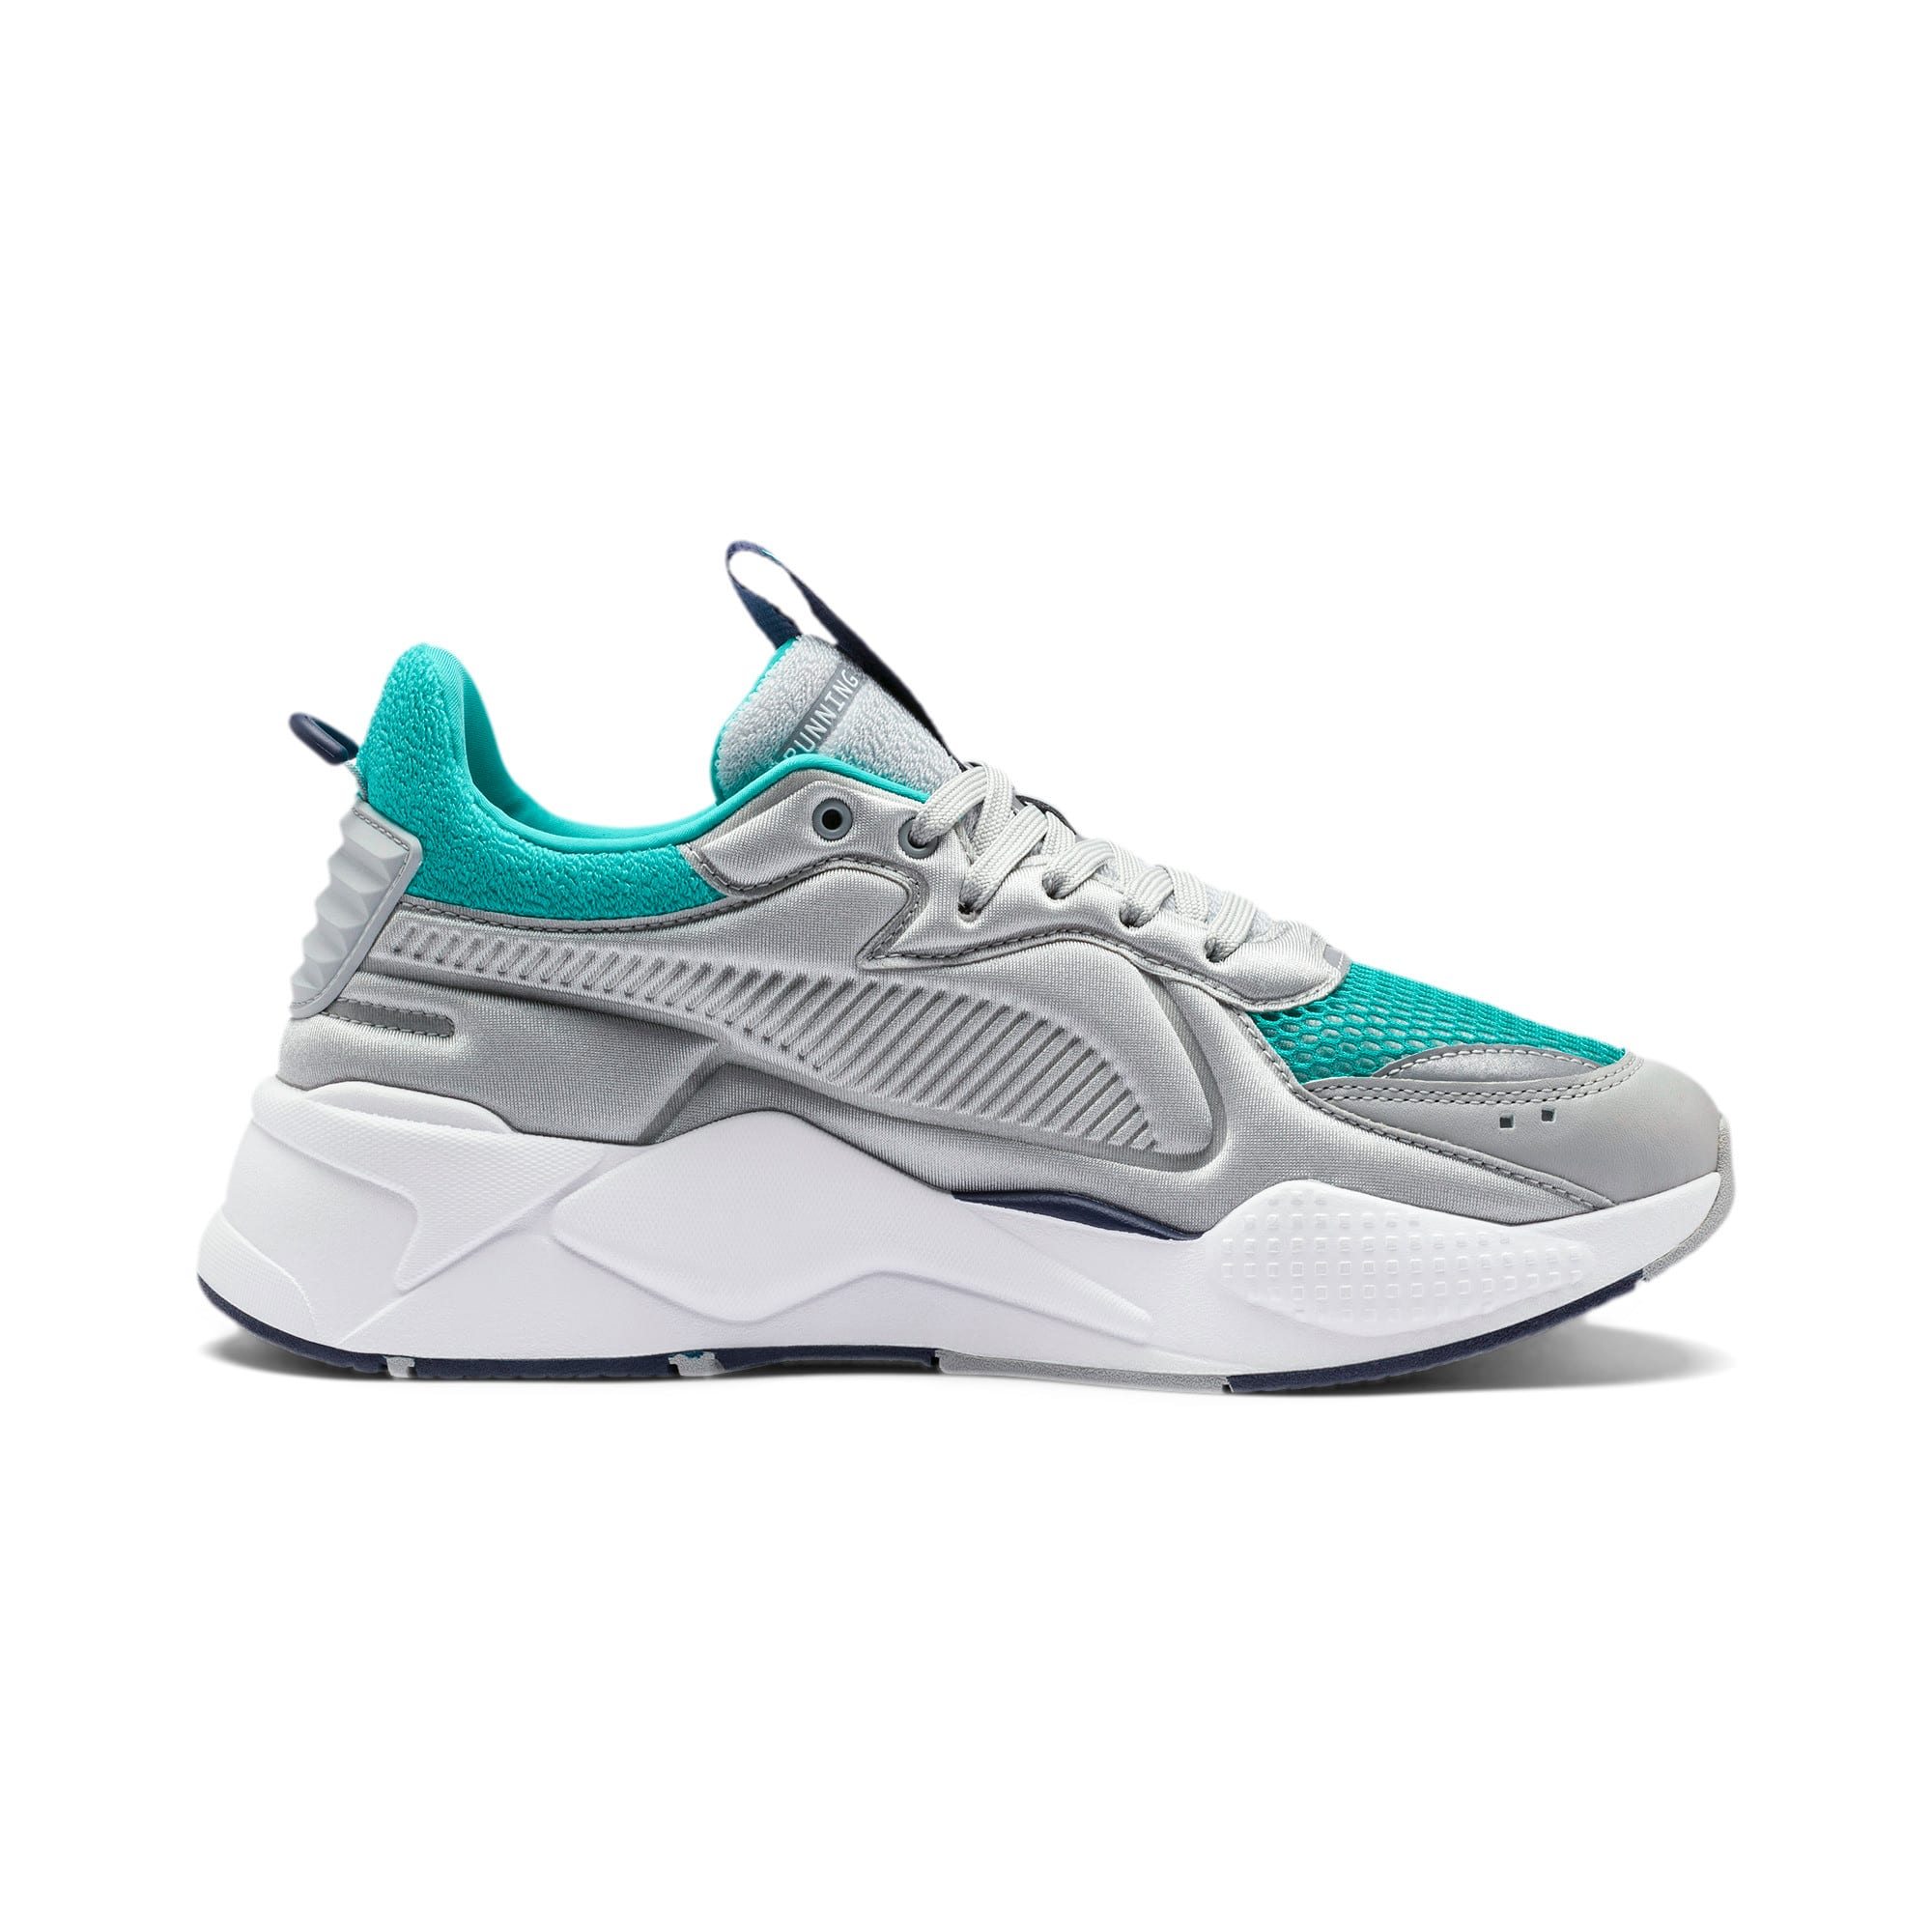 Thumbnail 7 of RS-X Softcase Sneakers, High Rise-Blue Turquoise, medium